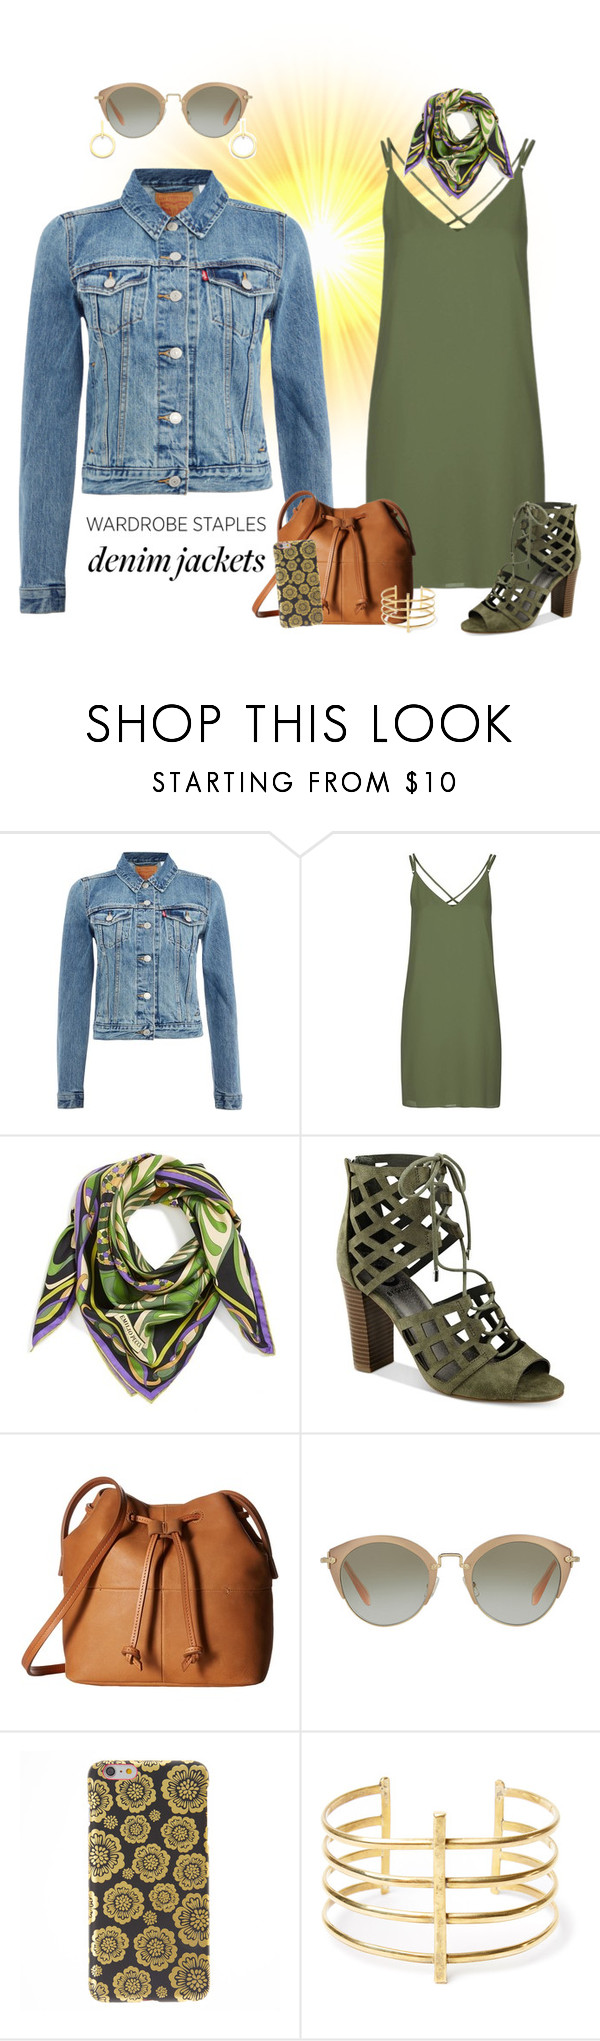 """Late Summer ..."" by krusie ❤ liked on Polyvore featuring Levi's, Topshop, Emilio Pucci, G by Guess, ECCO, Miu Miu, BauXo and Vita Fede"